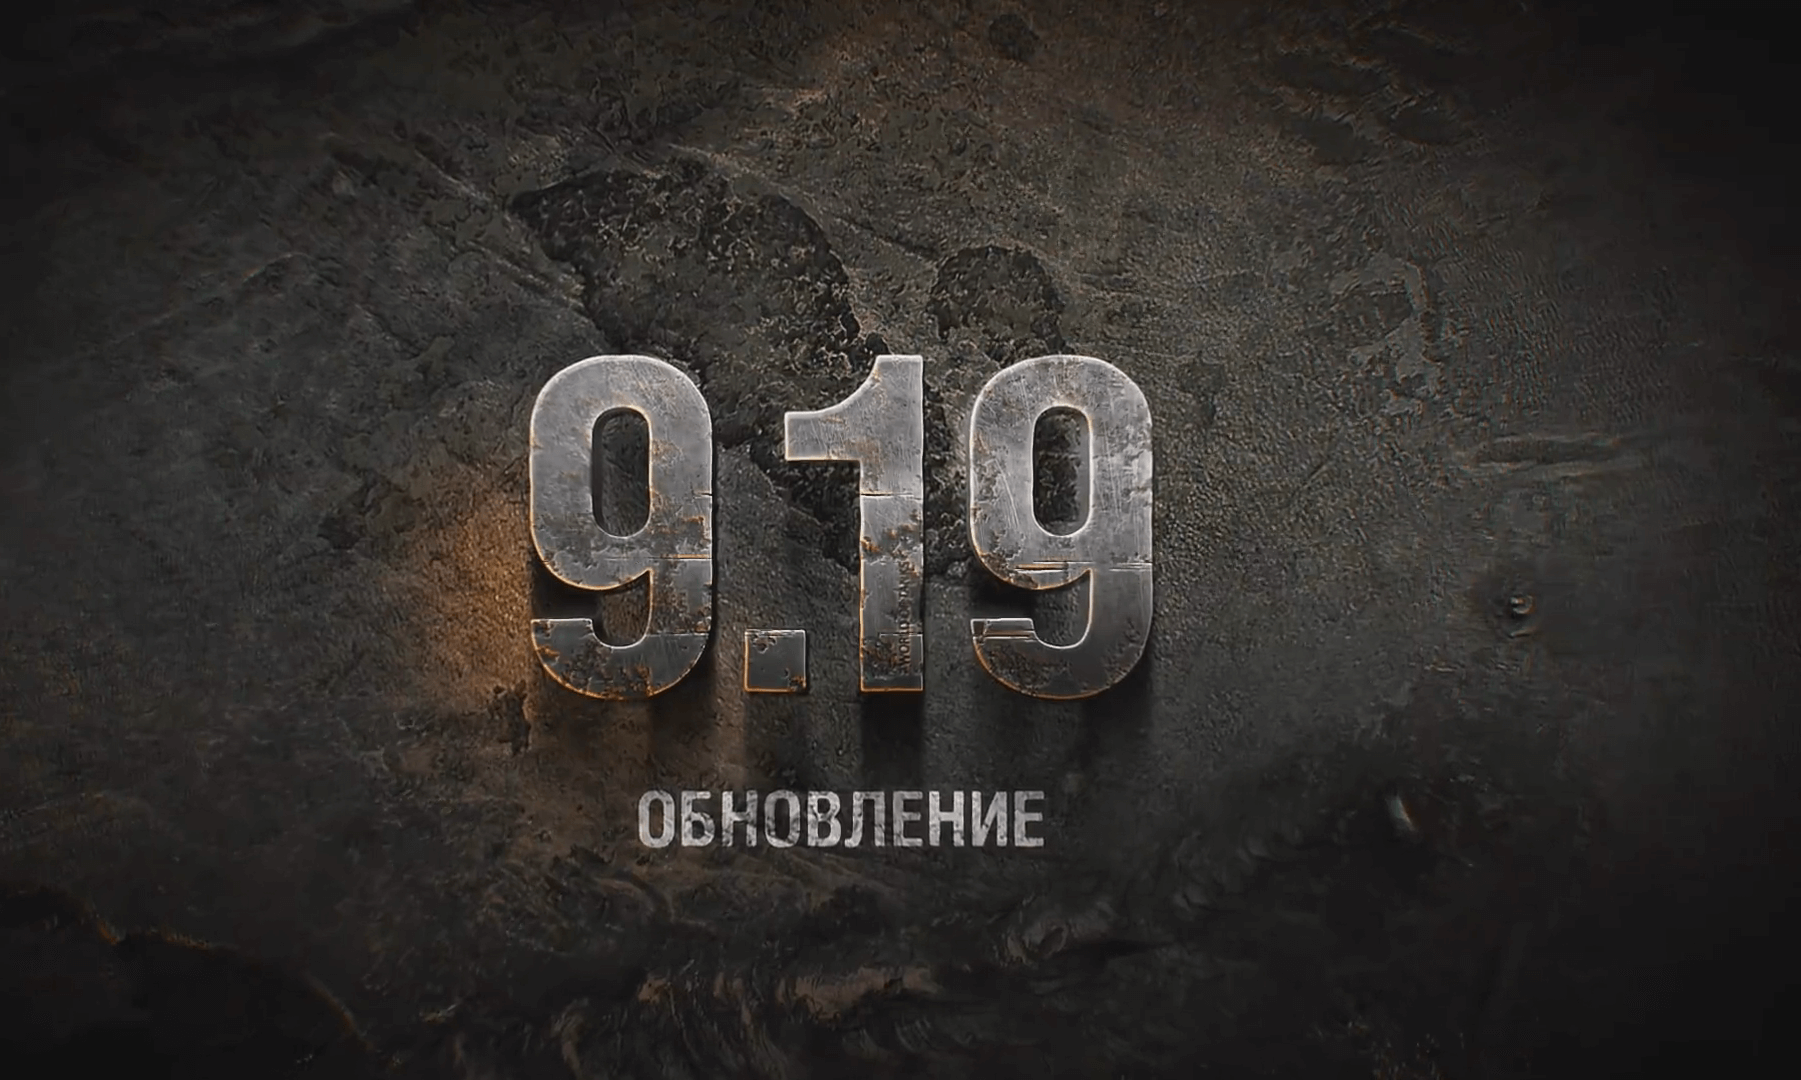 Обнова 9 19 world of tanks видео